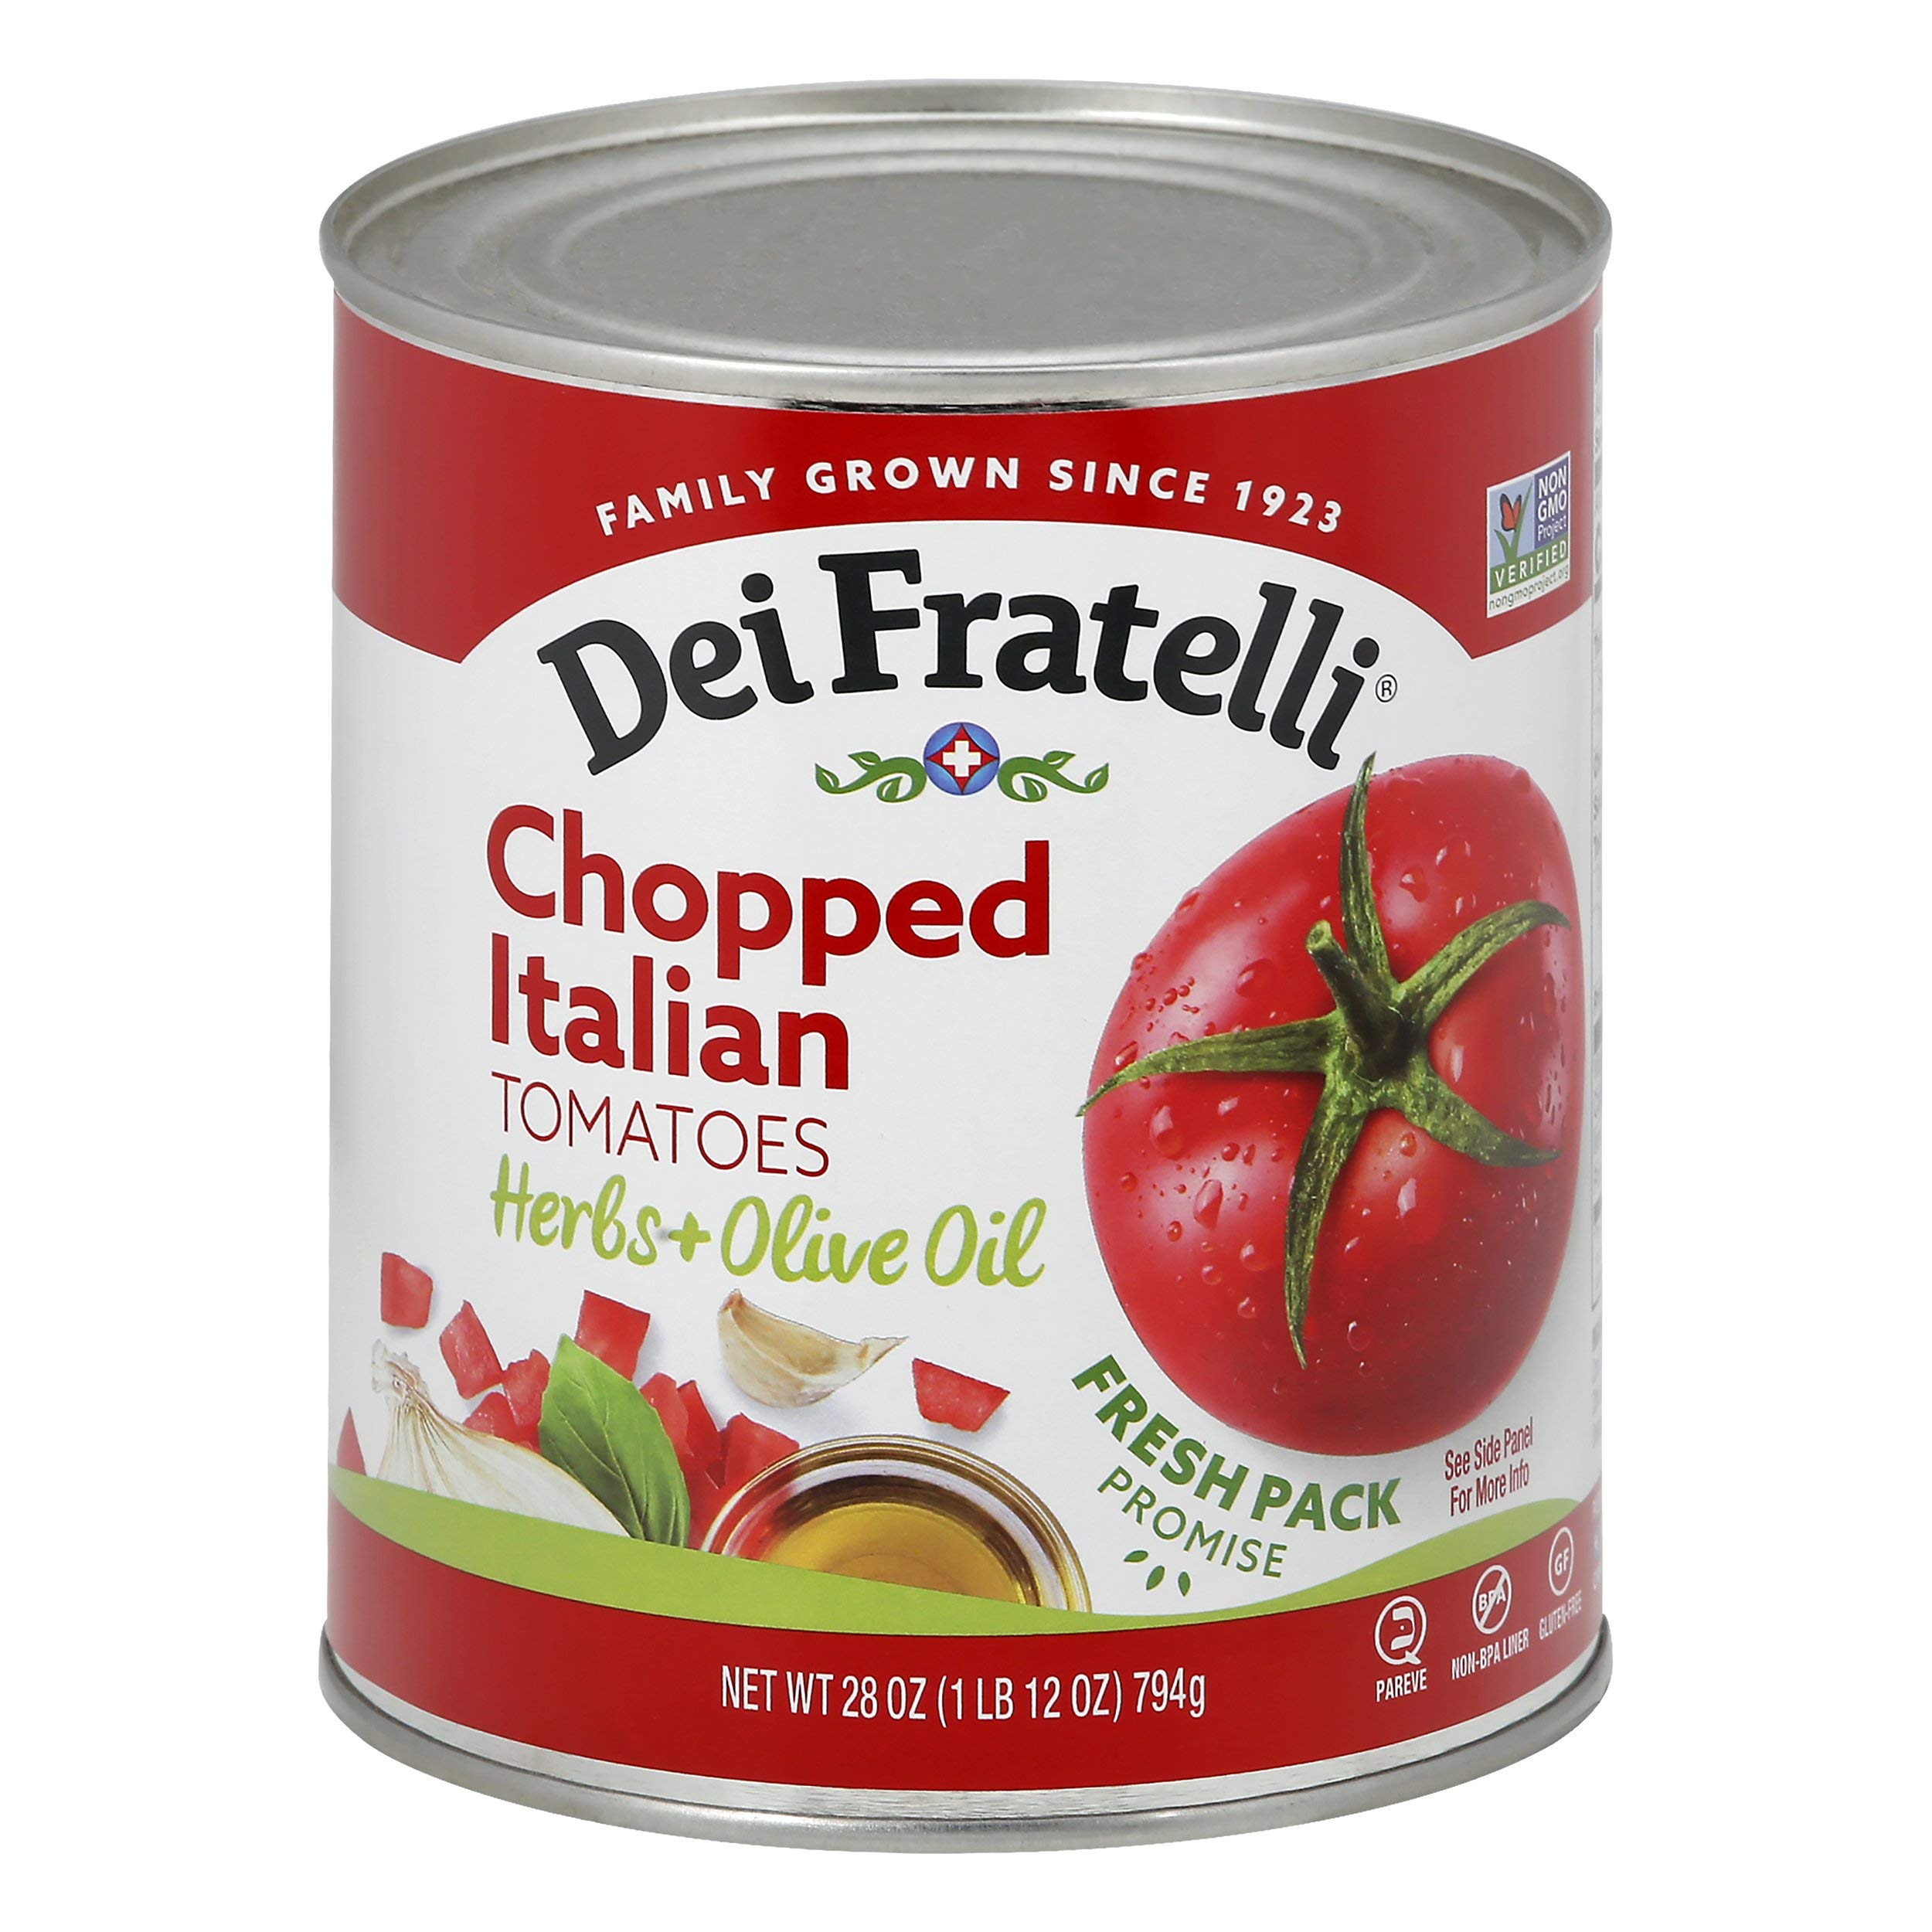 Dei Fratelli Chopped Italian Tomatoes - All Natural - 5th Generation Recipe (28 oz. cans; 6 pack)